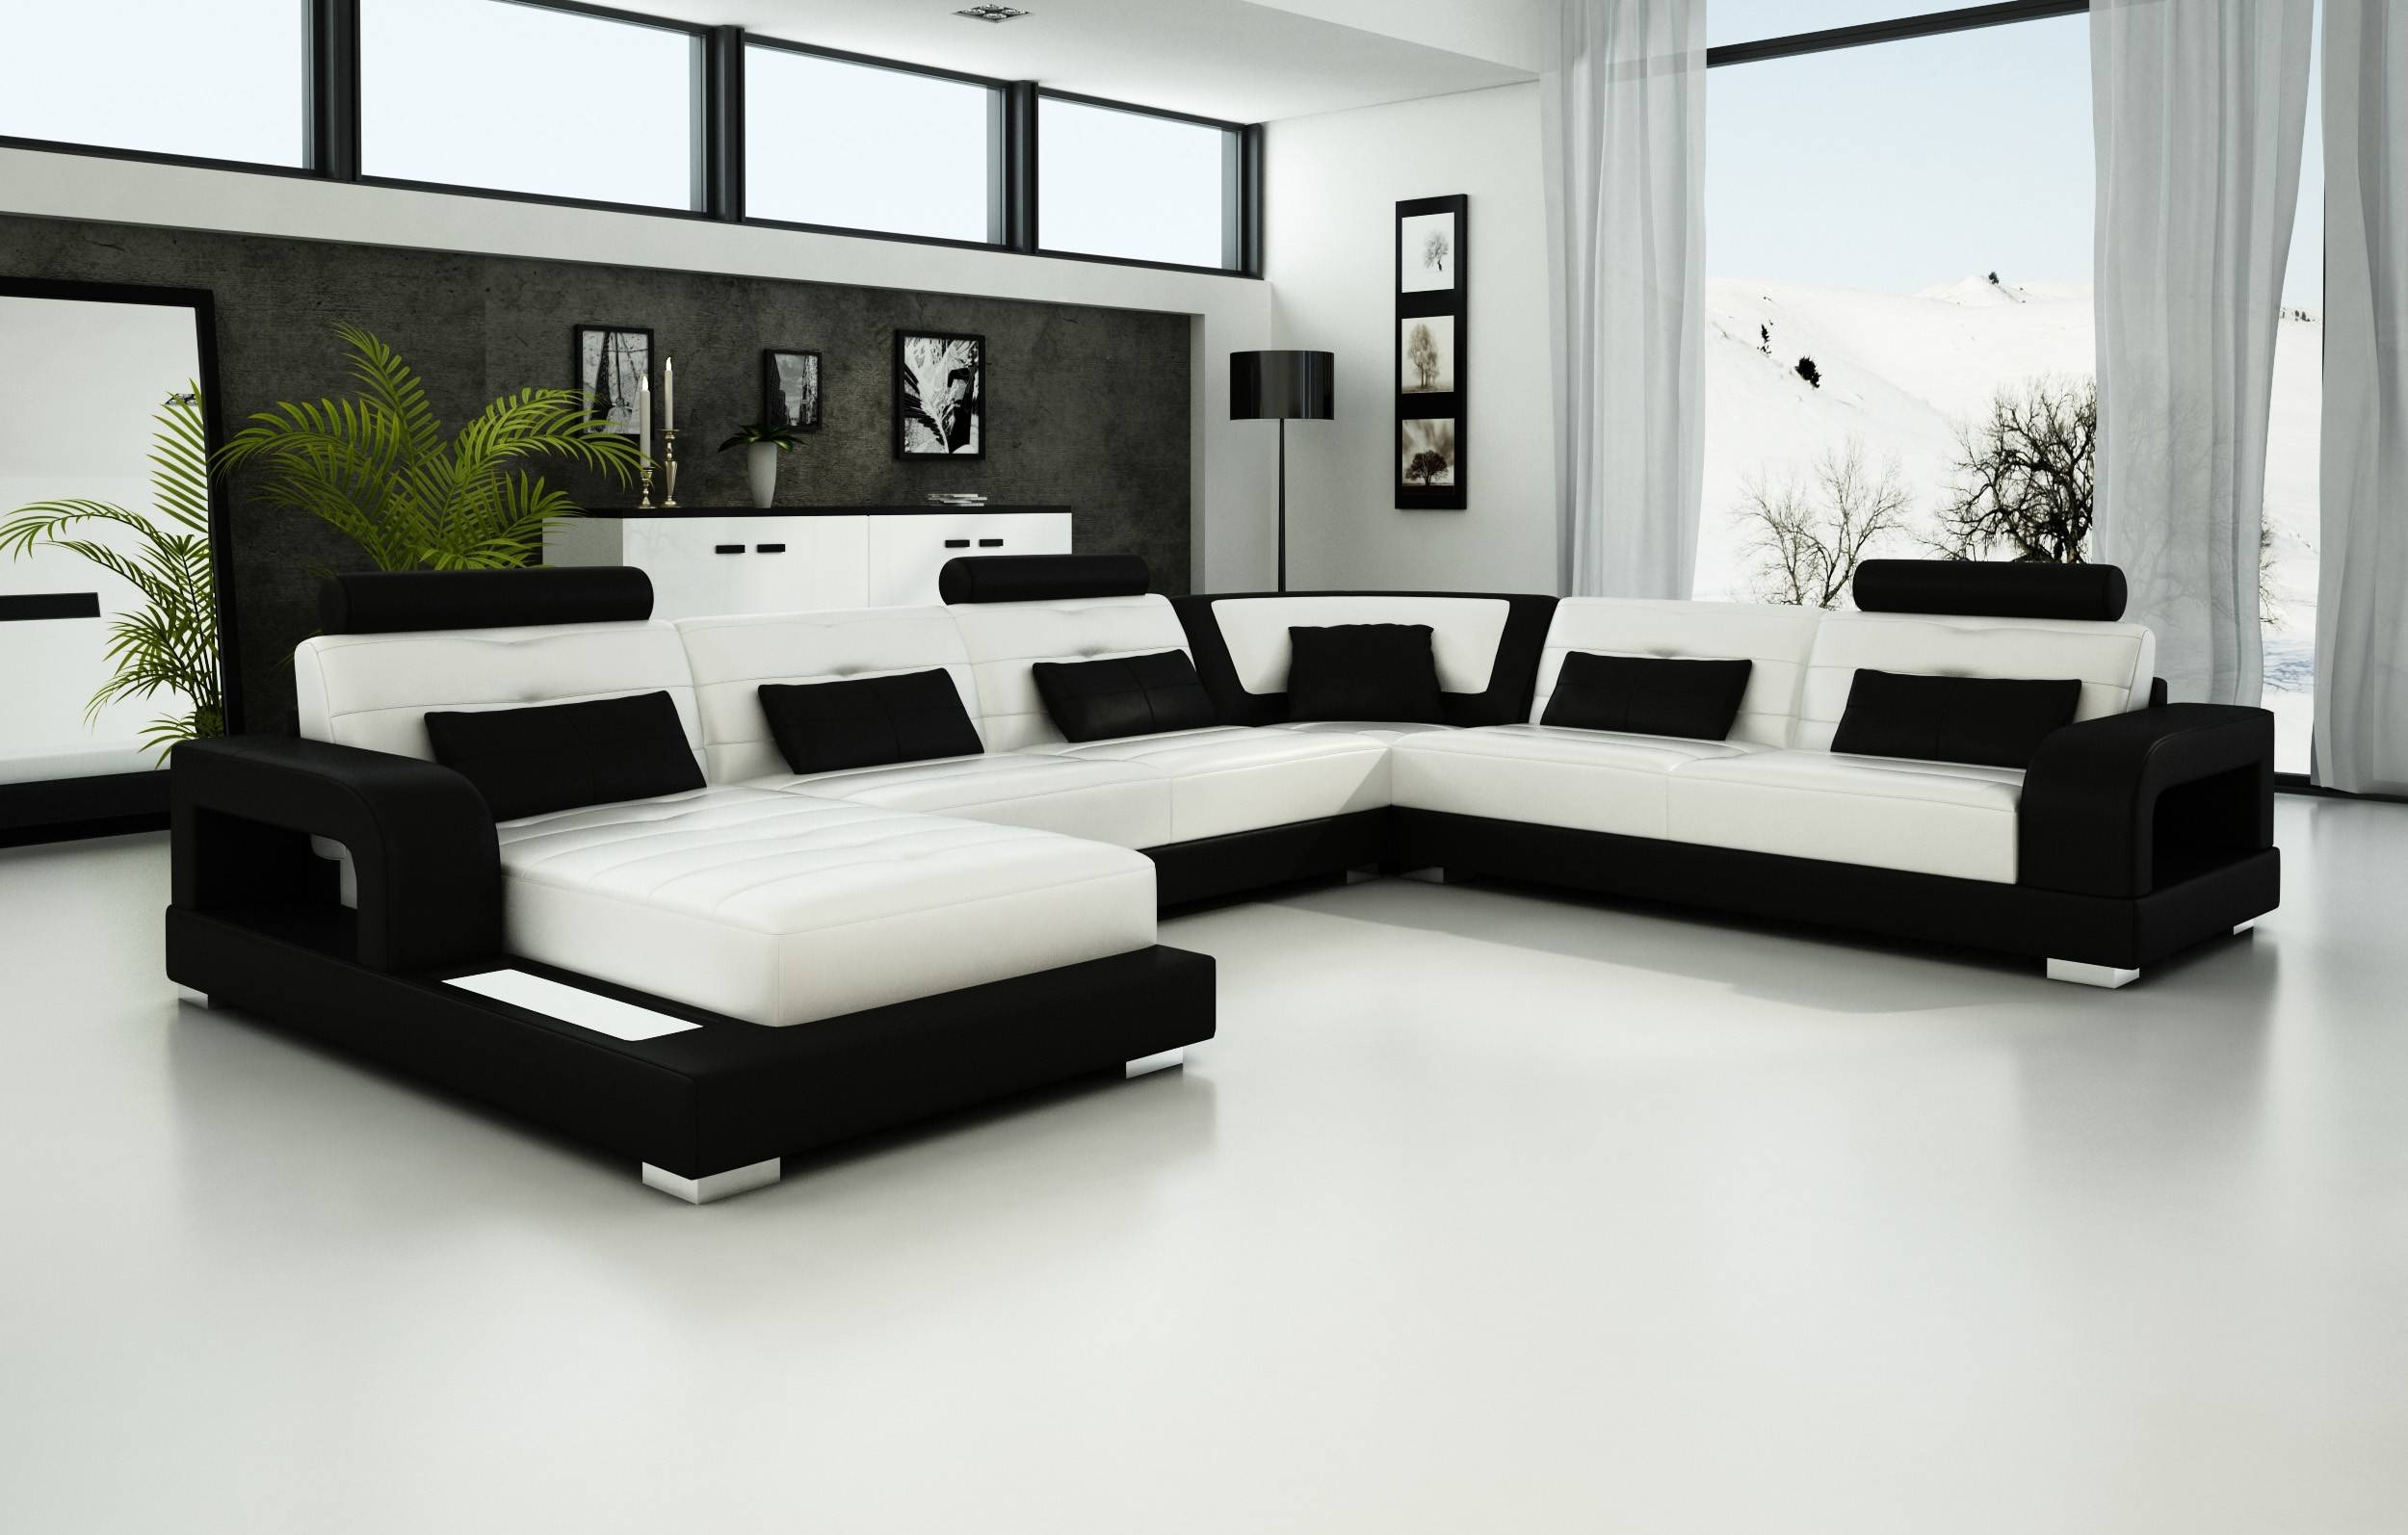 Bedroom : Leather Recliners Modular Sofa Living Room Tables Brown pertaining to Black and White Sofas and Loveseats (Image 2 of 15)